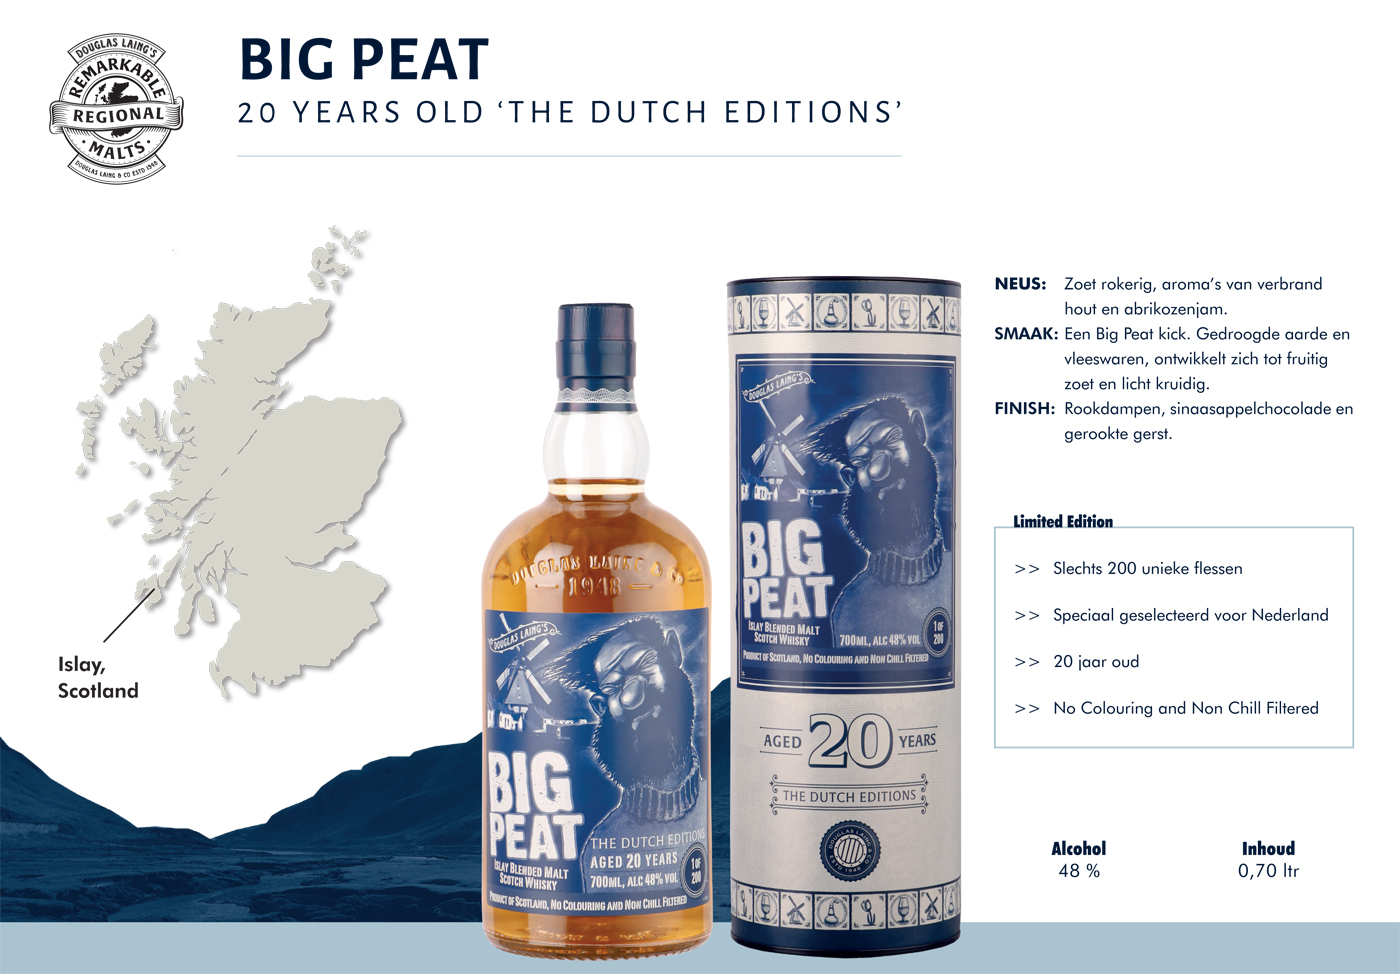 Big Peat 20 Years Old The Dutch Editions